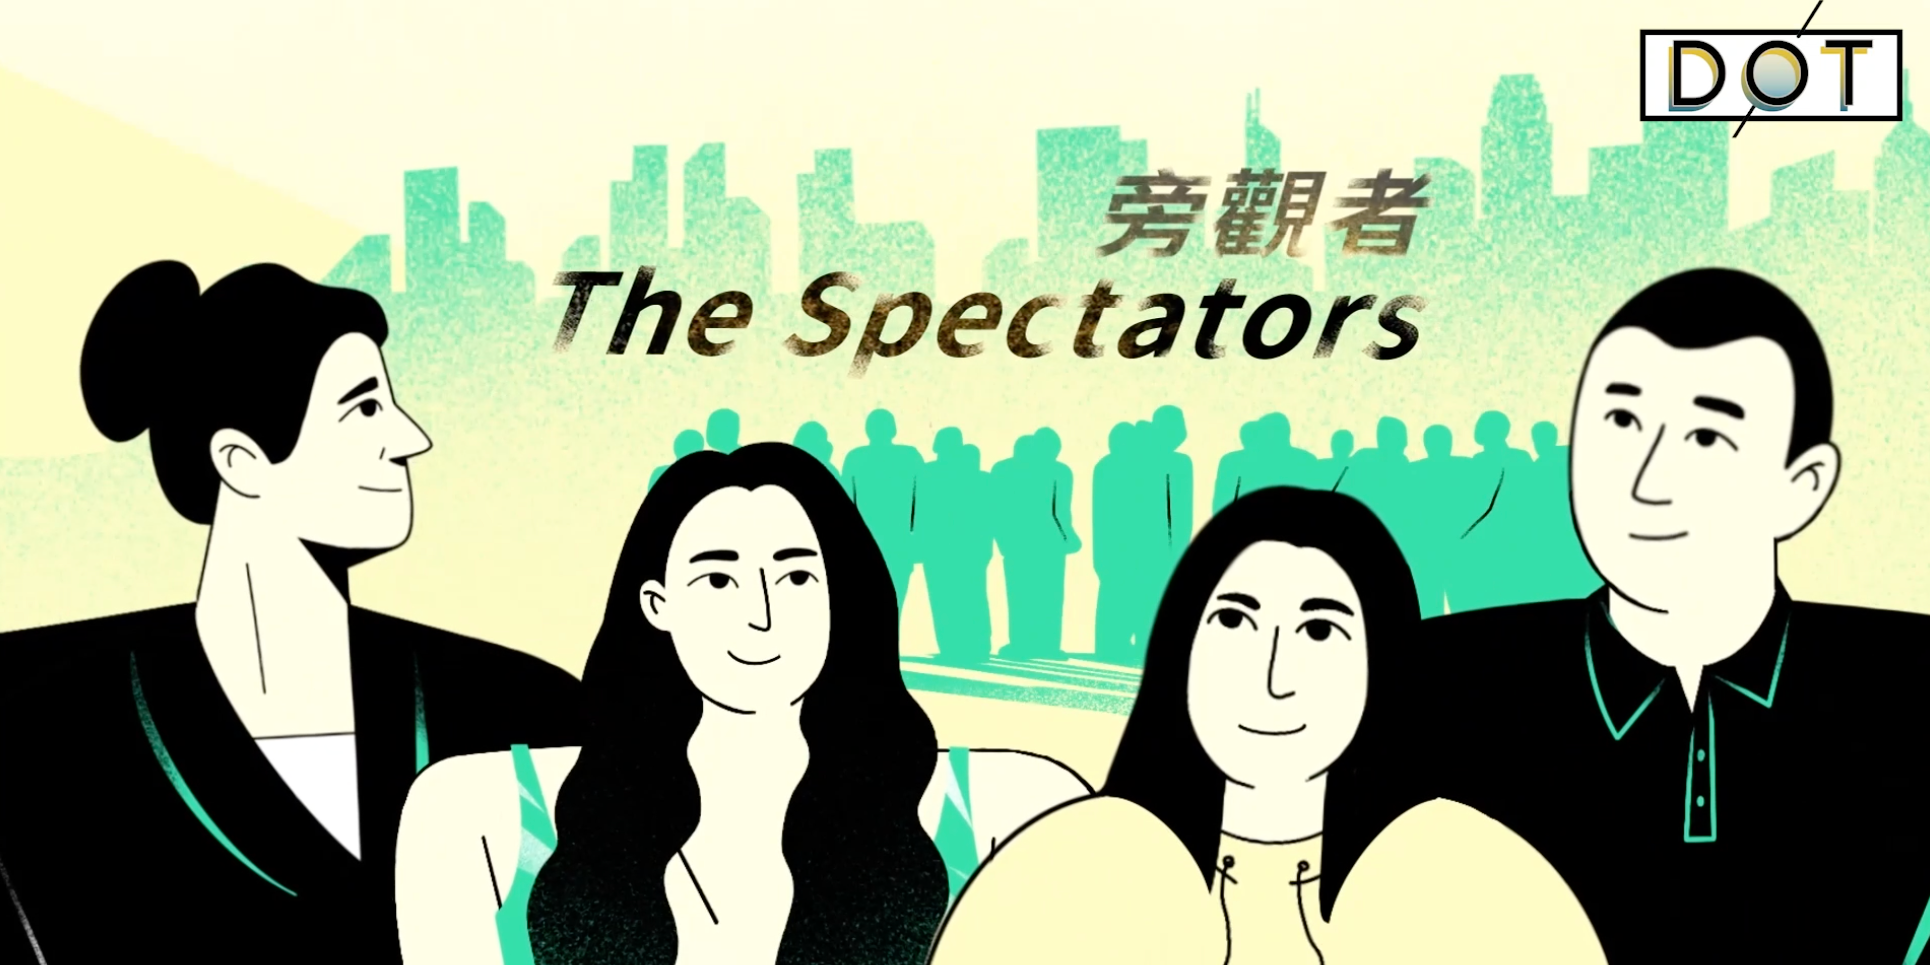 Silver Lining beyond HK Chaos | The Spectators